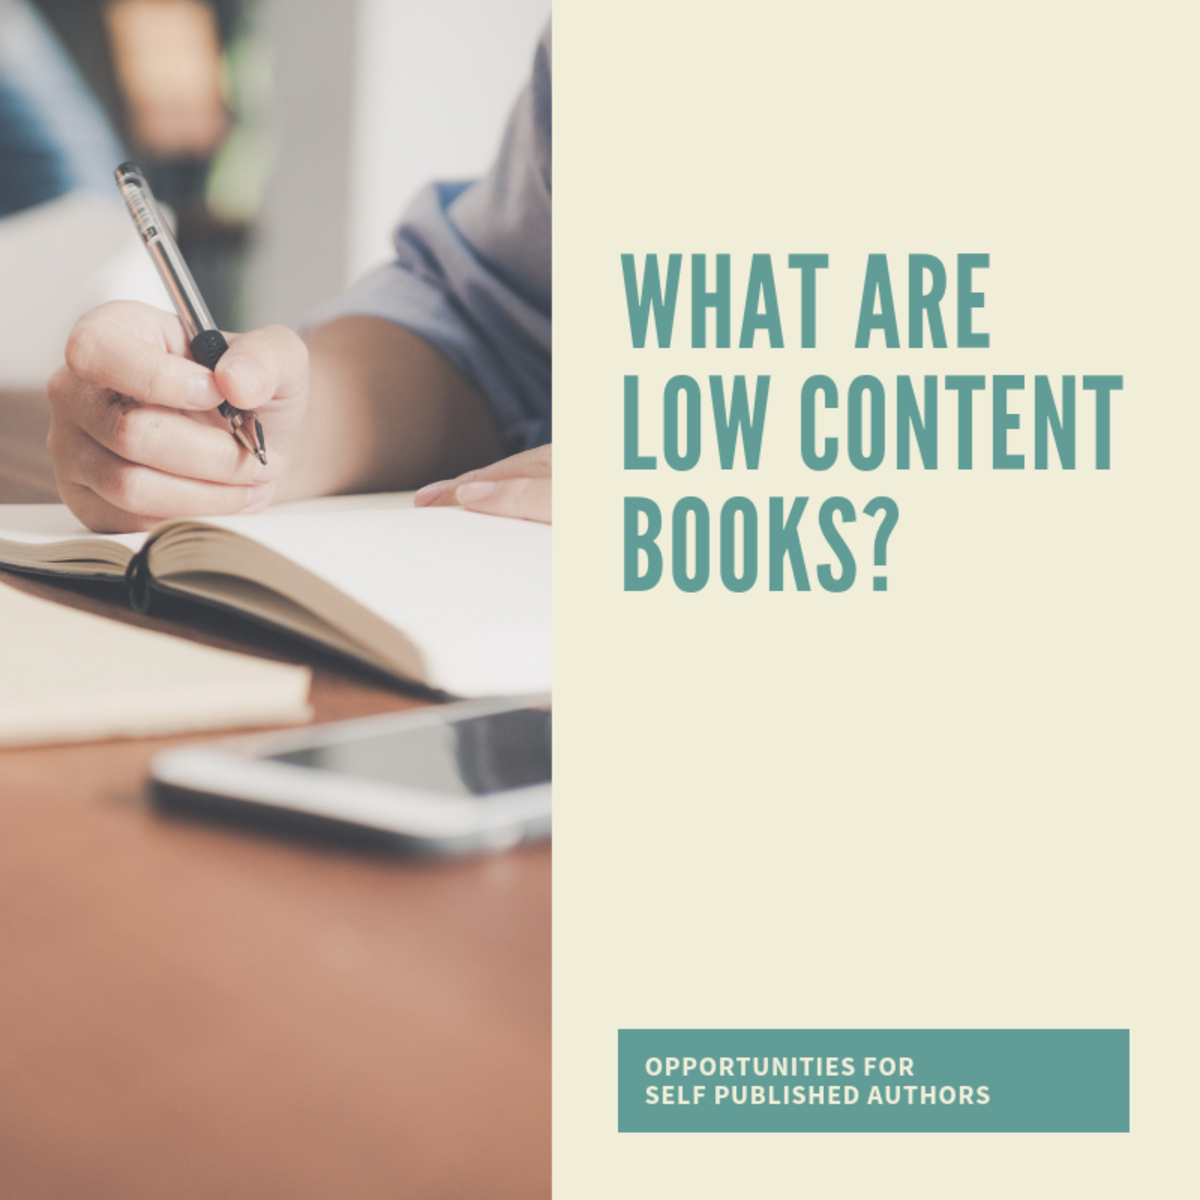 What Are Low Content Books?